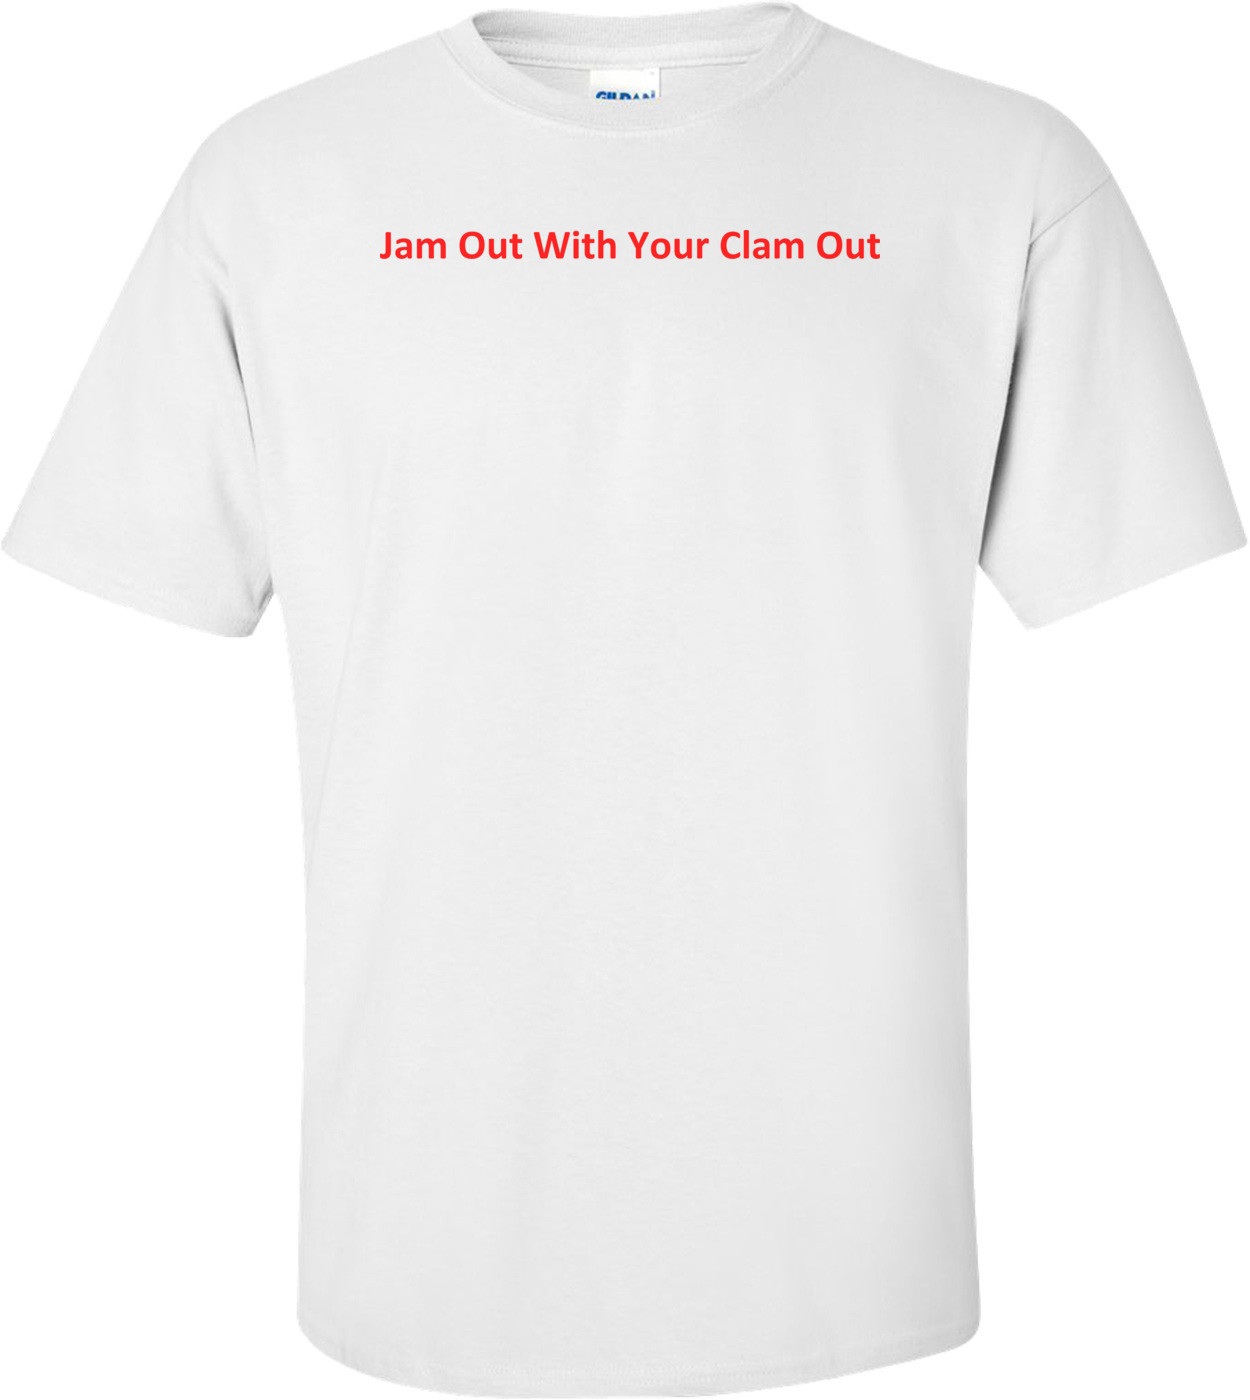 Jam Out With Your Clam Out T-Shirt